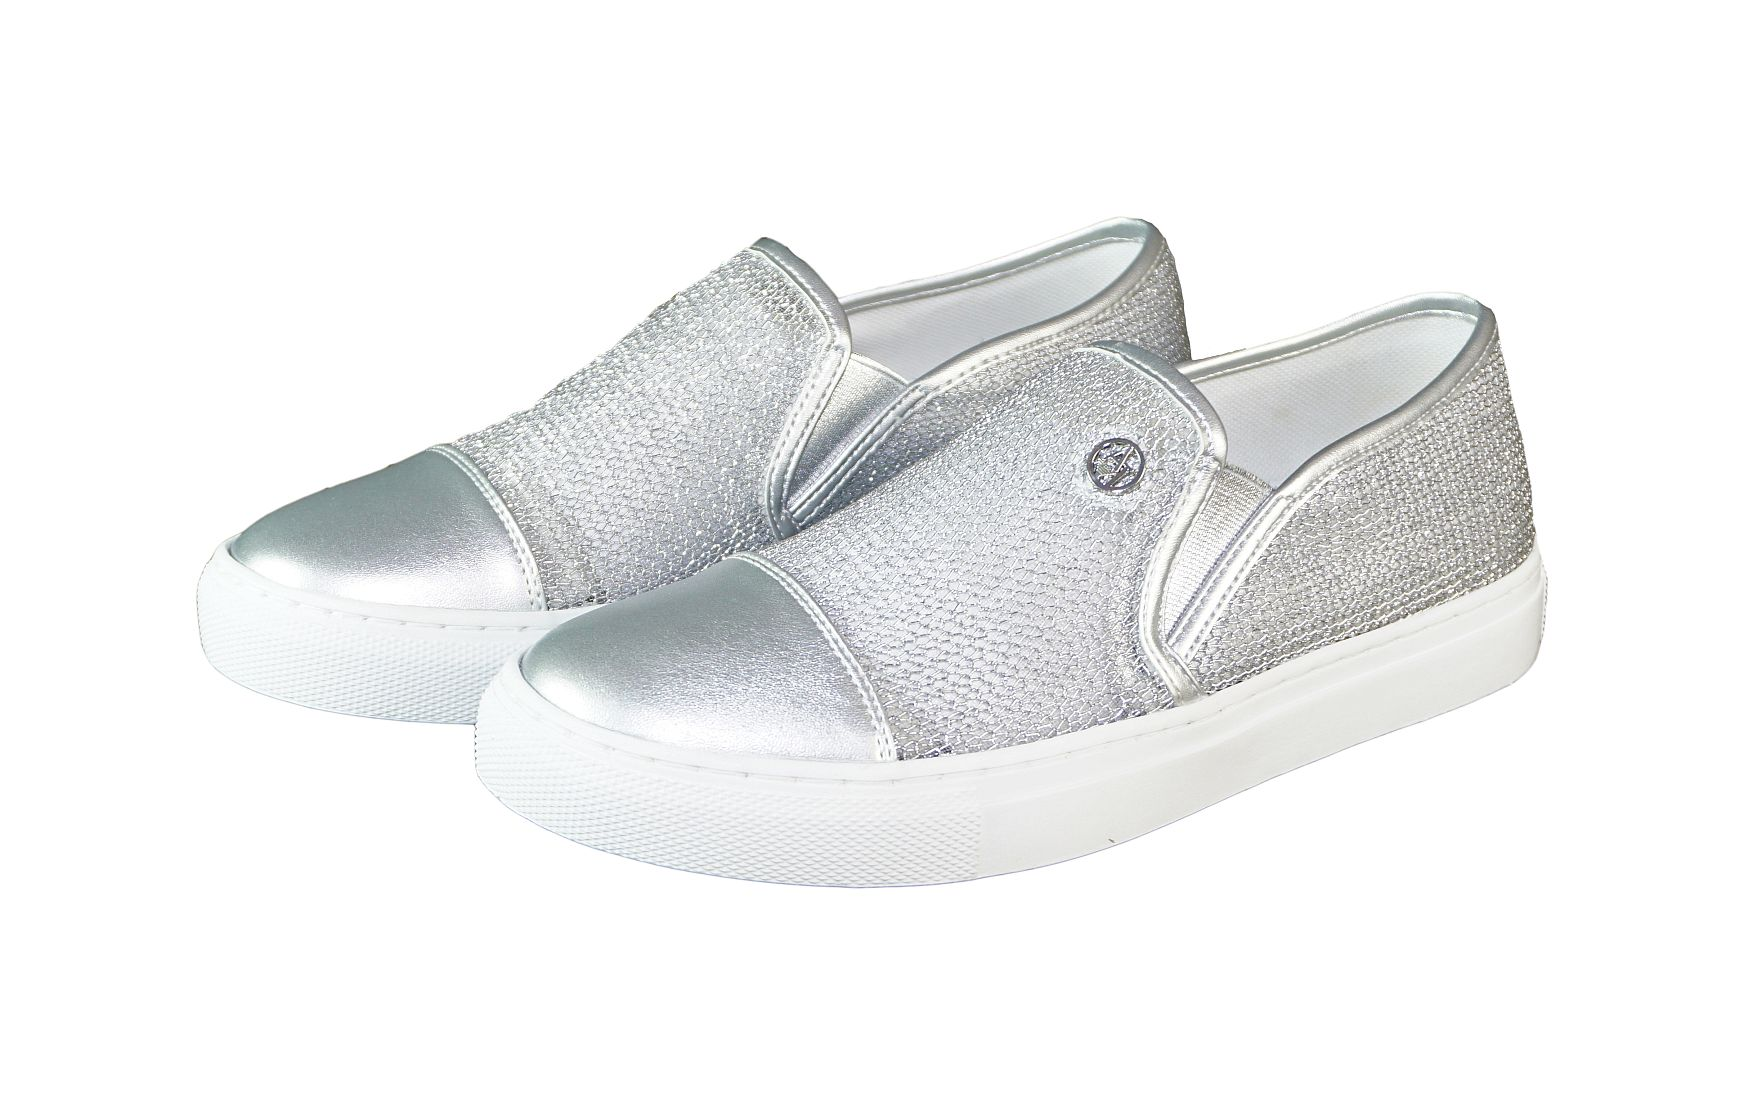 Armani Jeans Schuhe SLIP ON 925195 7P583 00017 Argento silber S17-AJS1